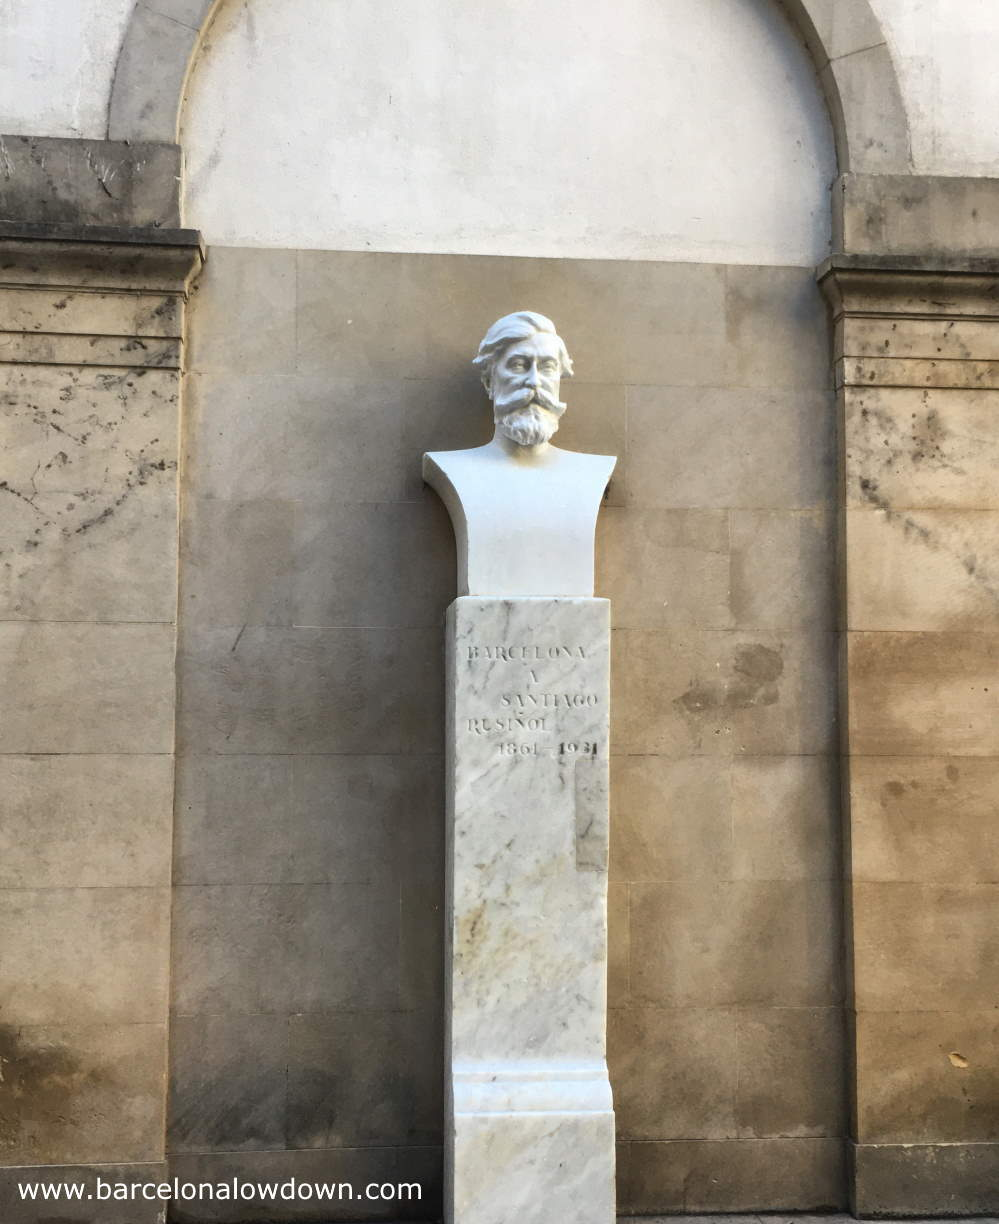 White bust of Catalan artist Santiago Rusiñol on a tall white marble plinth